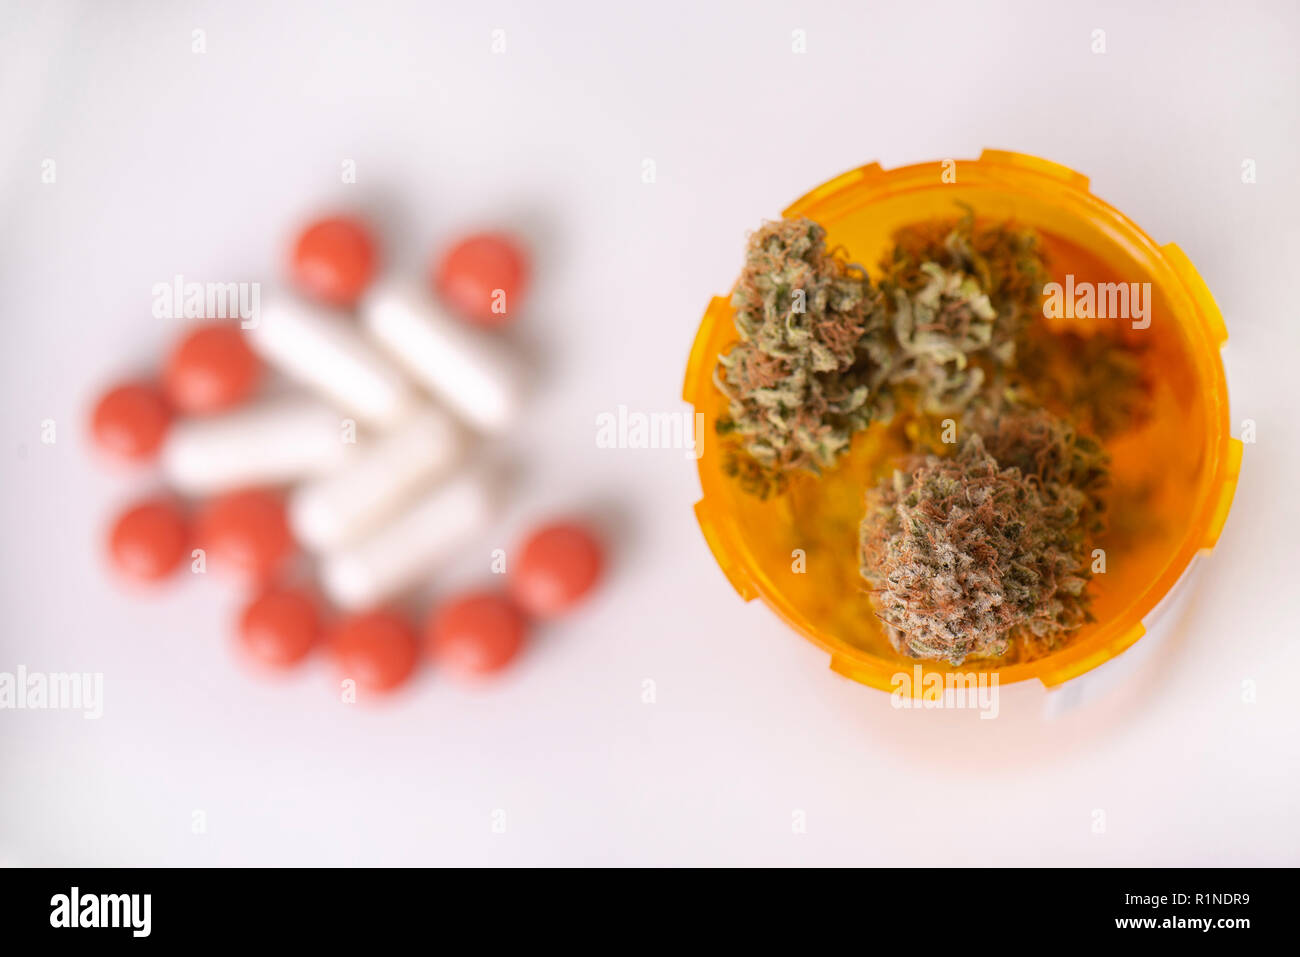 Legal Prescriptions Stock Photos & Legal Prescriptions Stock